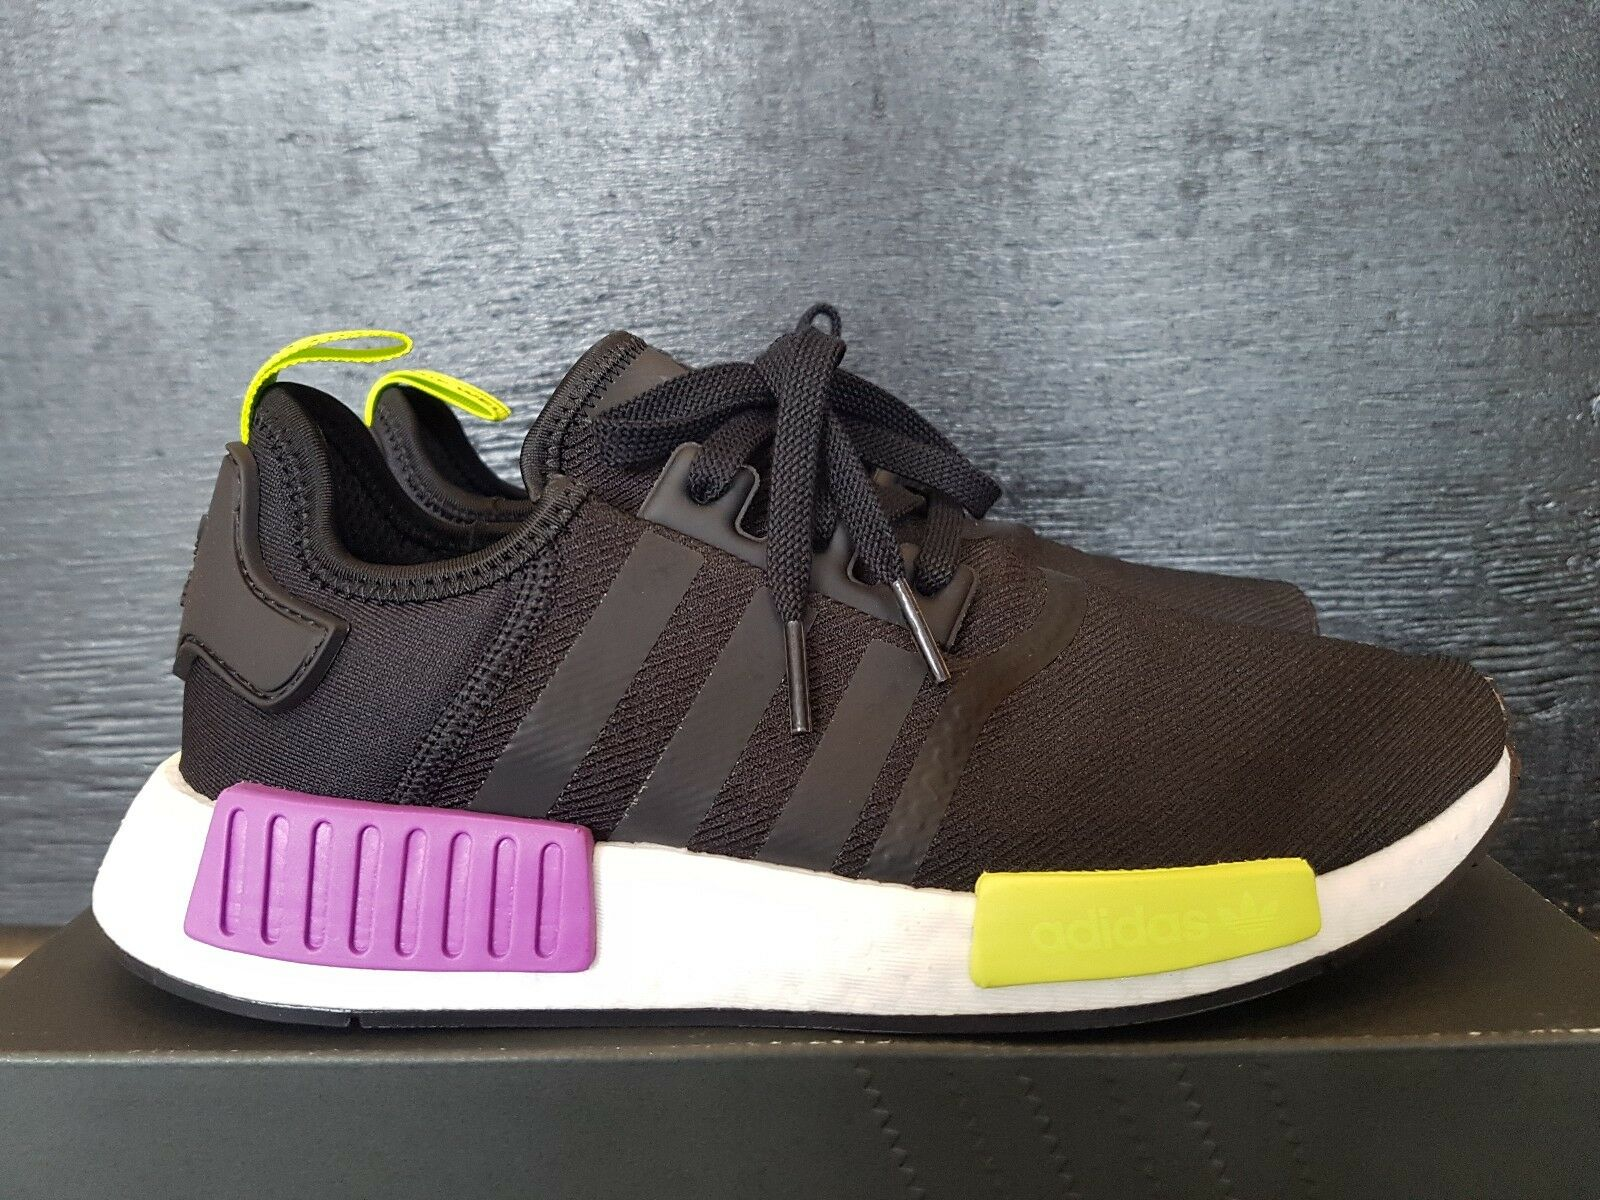 NEW IN THE BOX ADIDAS NMD_R1 D96627 BLACK SHOES FOR MEN